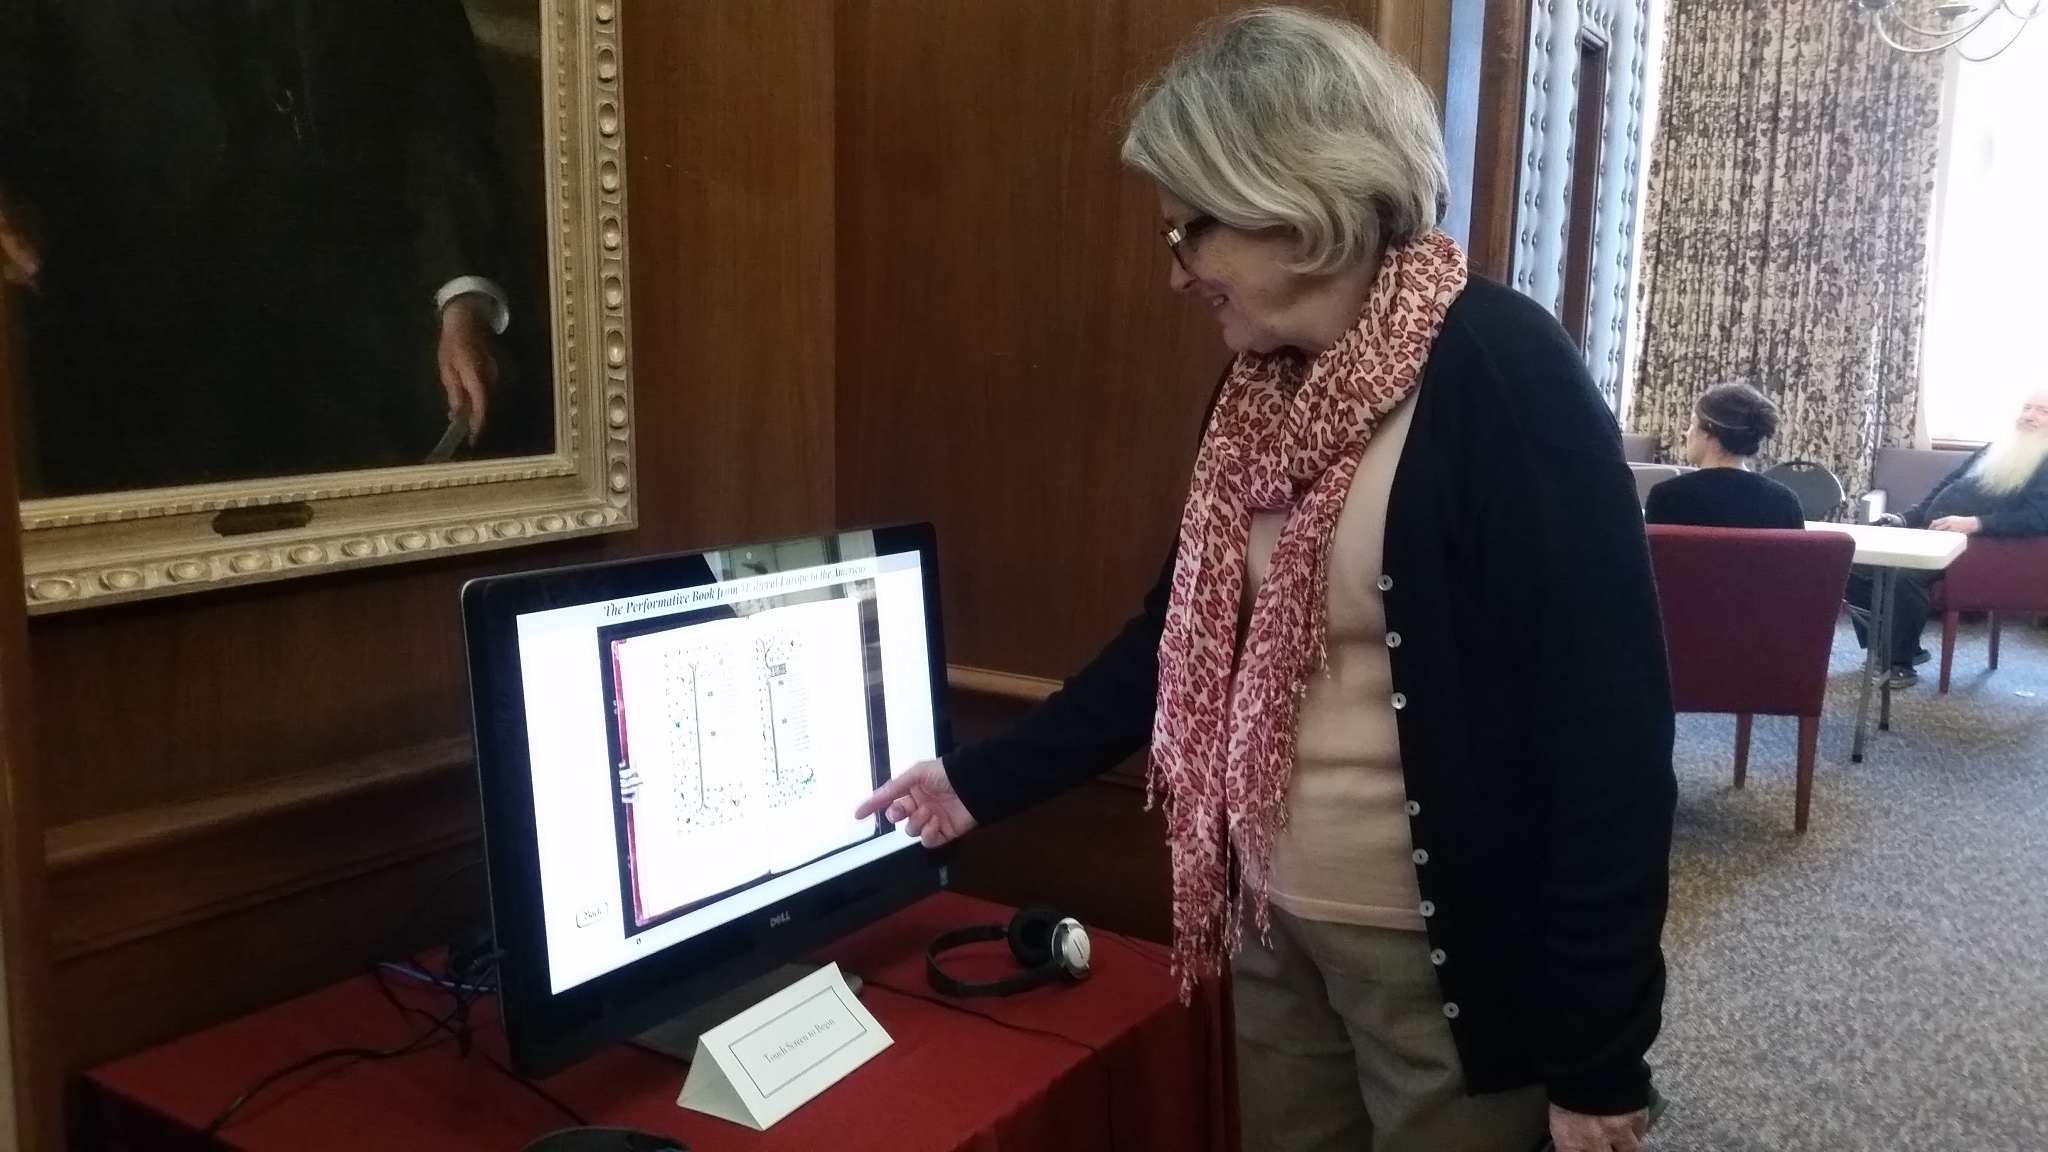 Cherry Williams, curator of manuscripts at the Lilly Library, pages through a digital version of a manuscript.